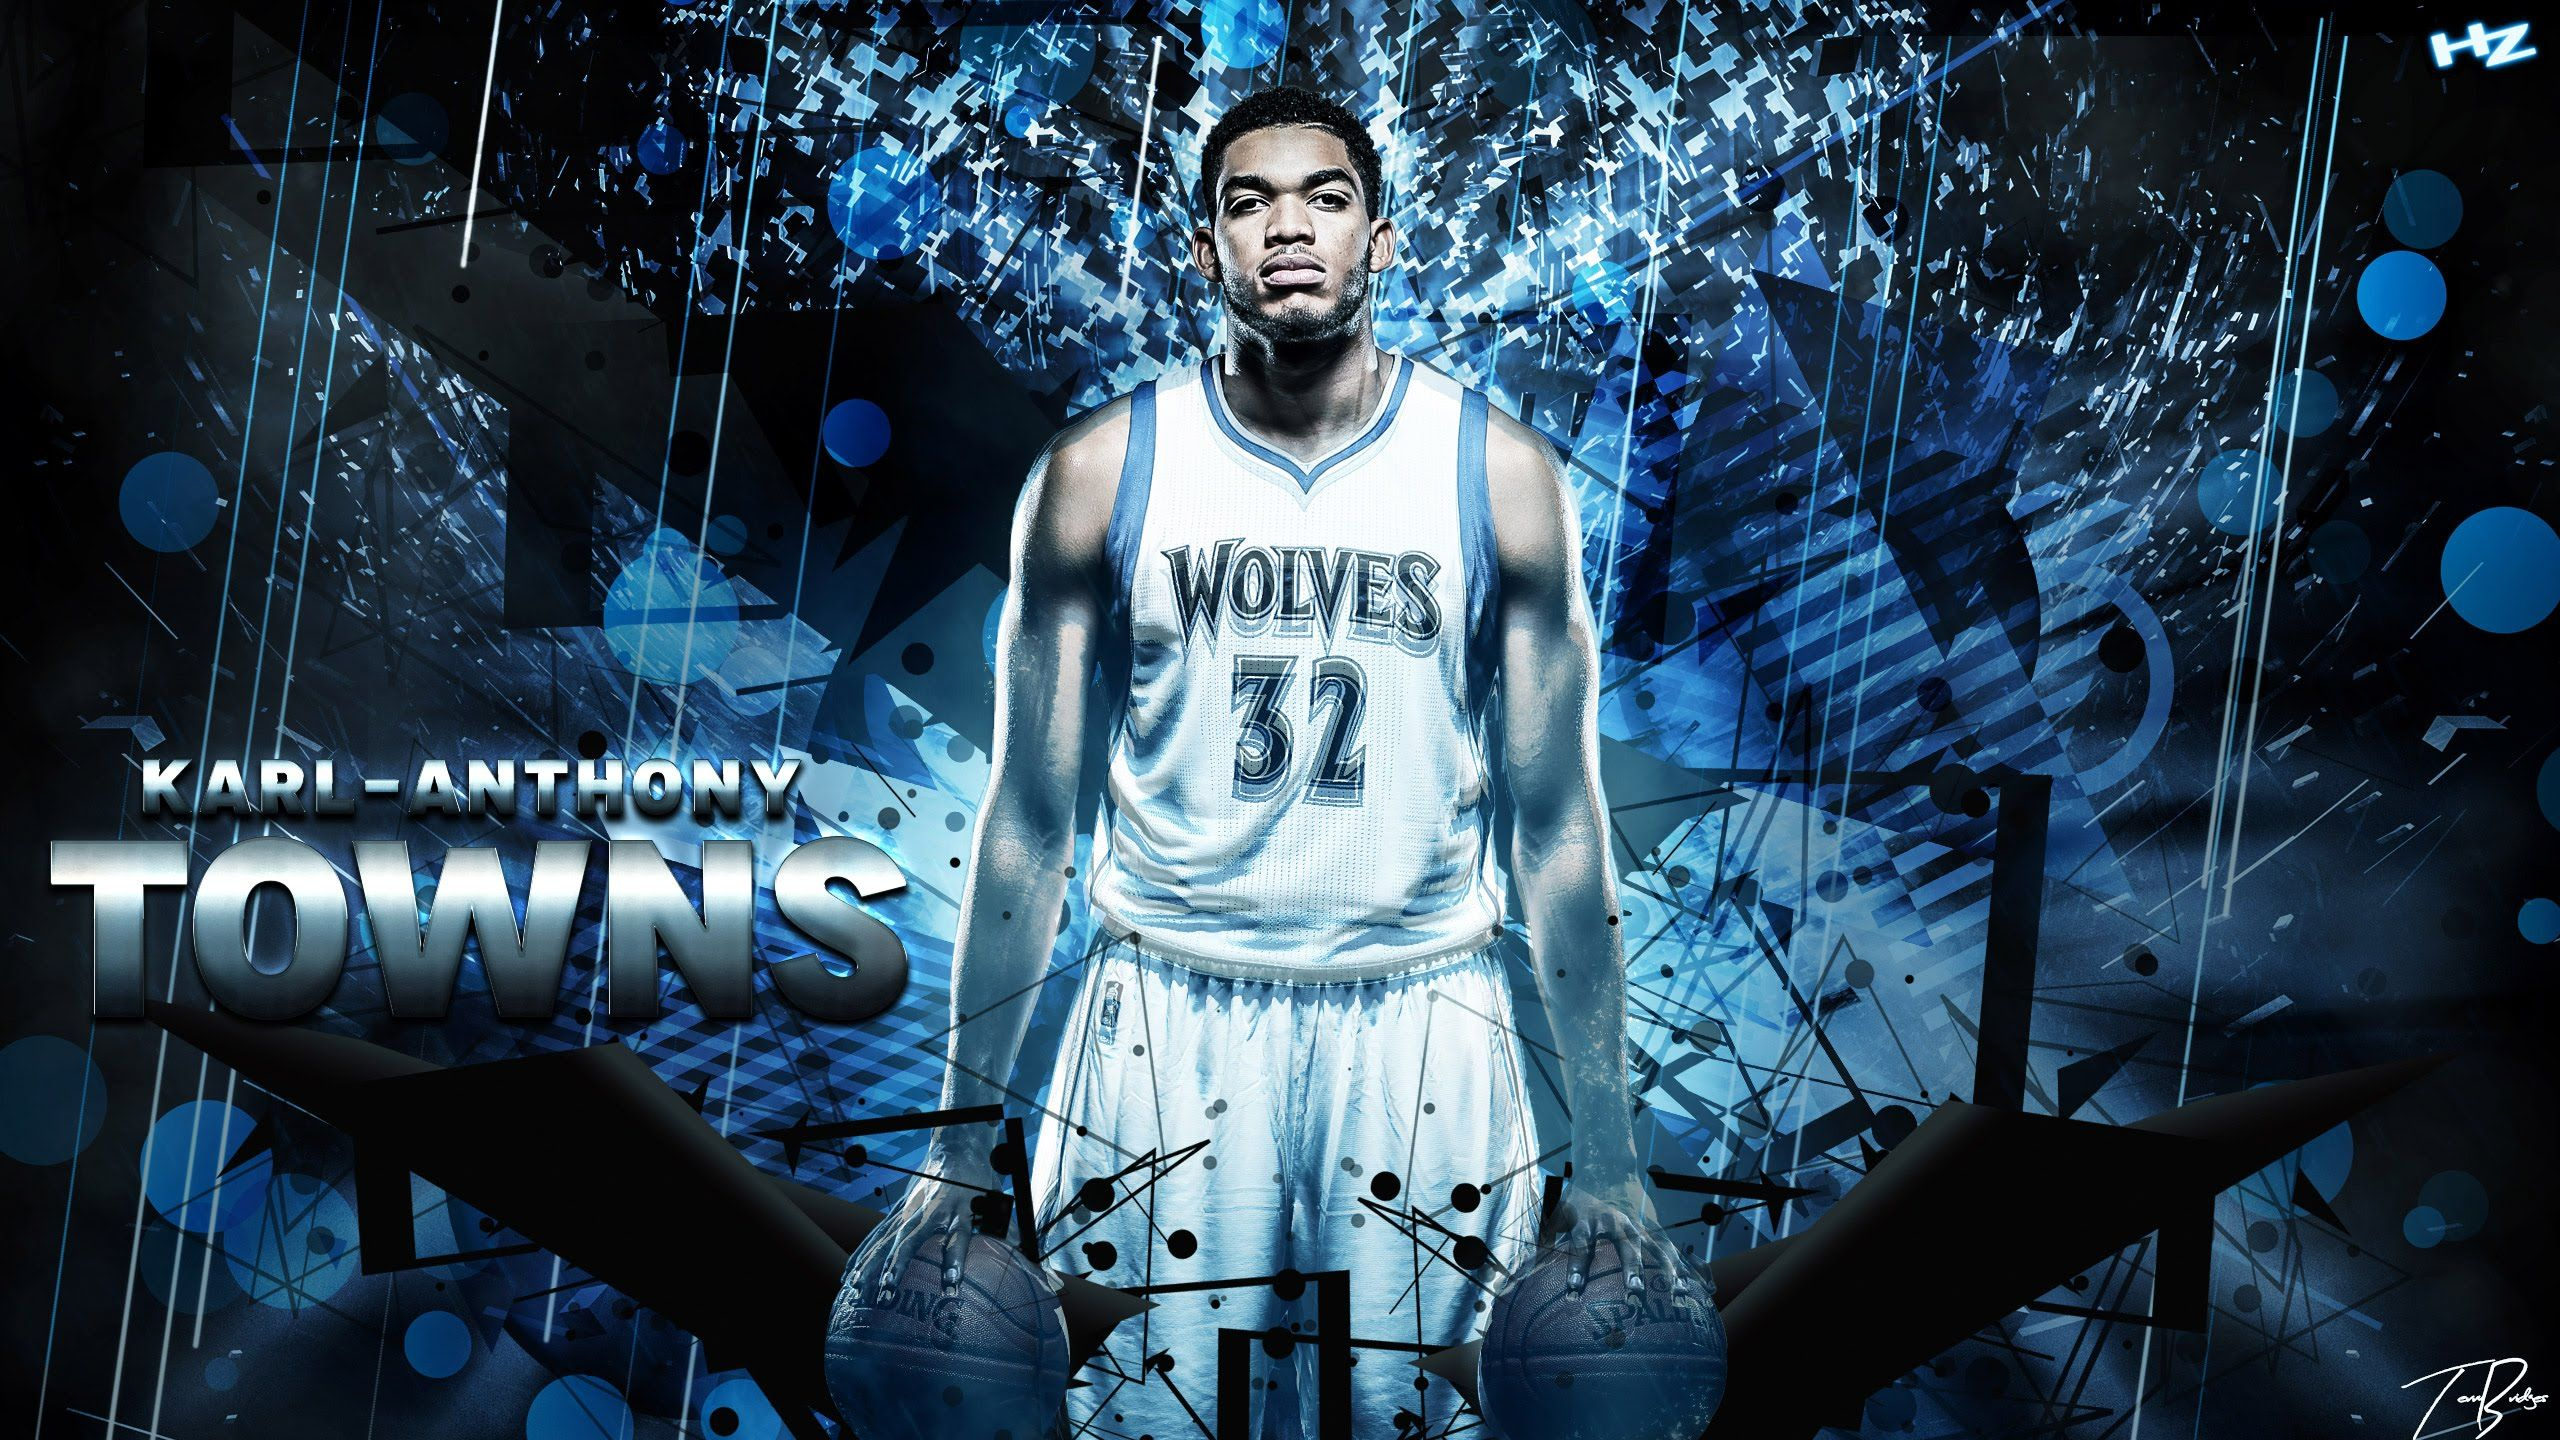 KarlAnthony Towns Mix ROTY ᴴᴰ Karl anthony towns